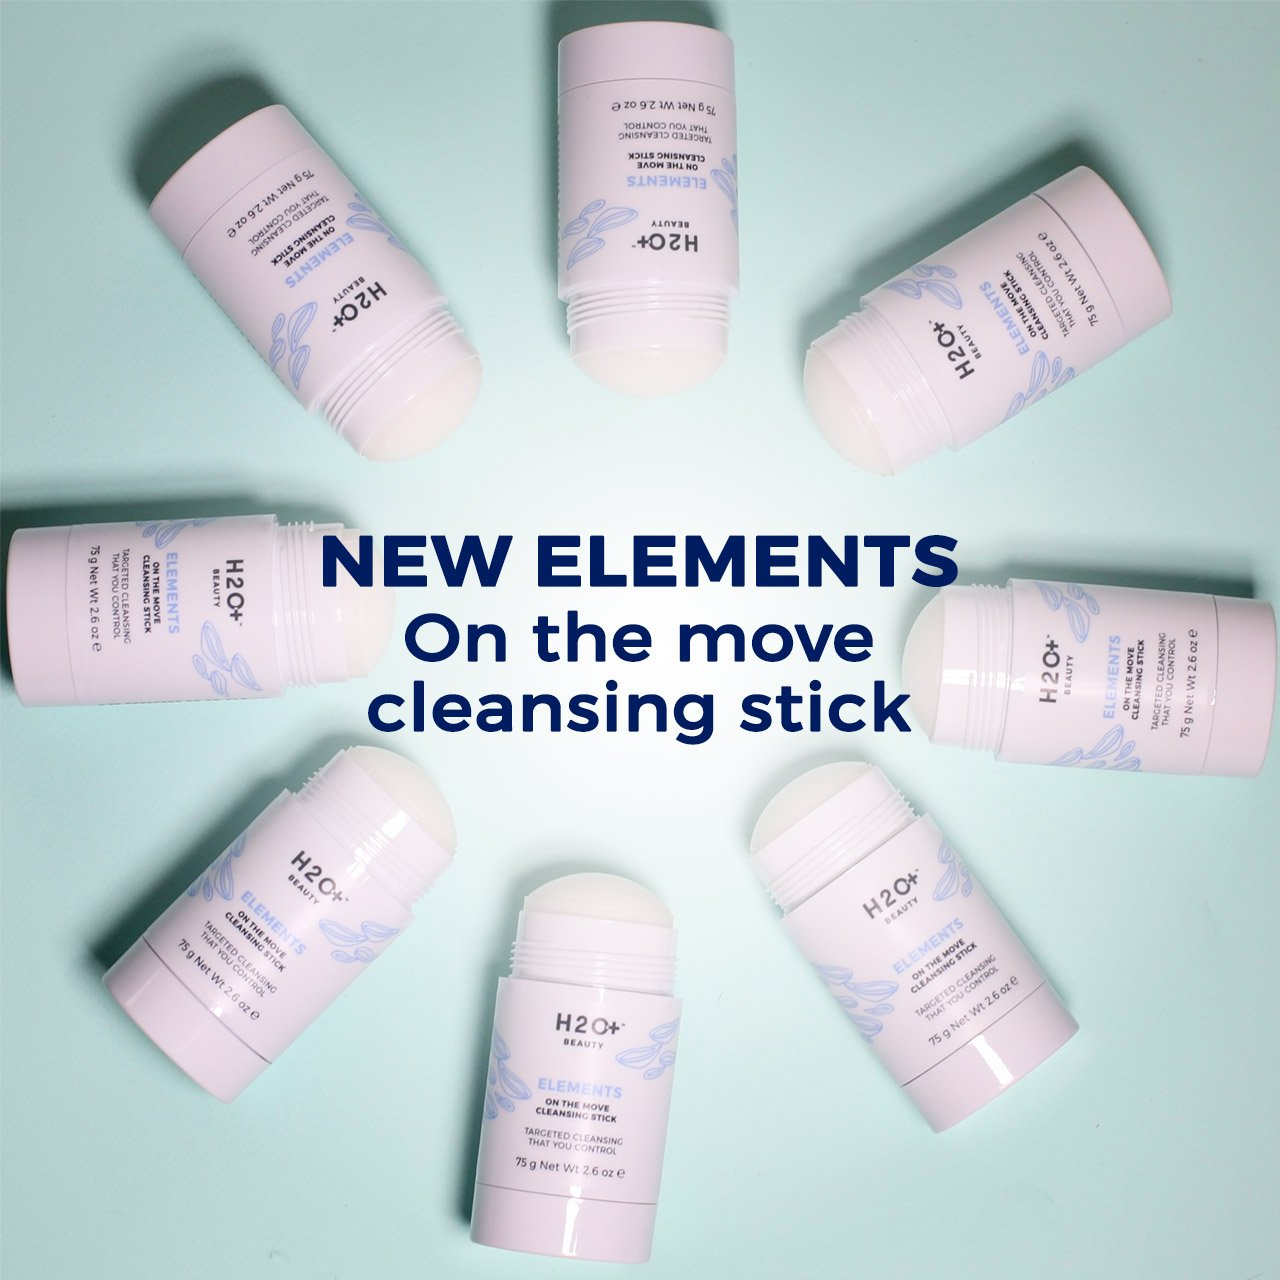 H2o beauty new anti aging collection cleansing stick for 111 sutter street 22nd floor san francisco ca 94104